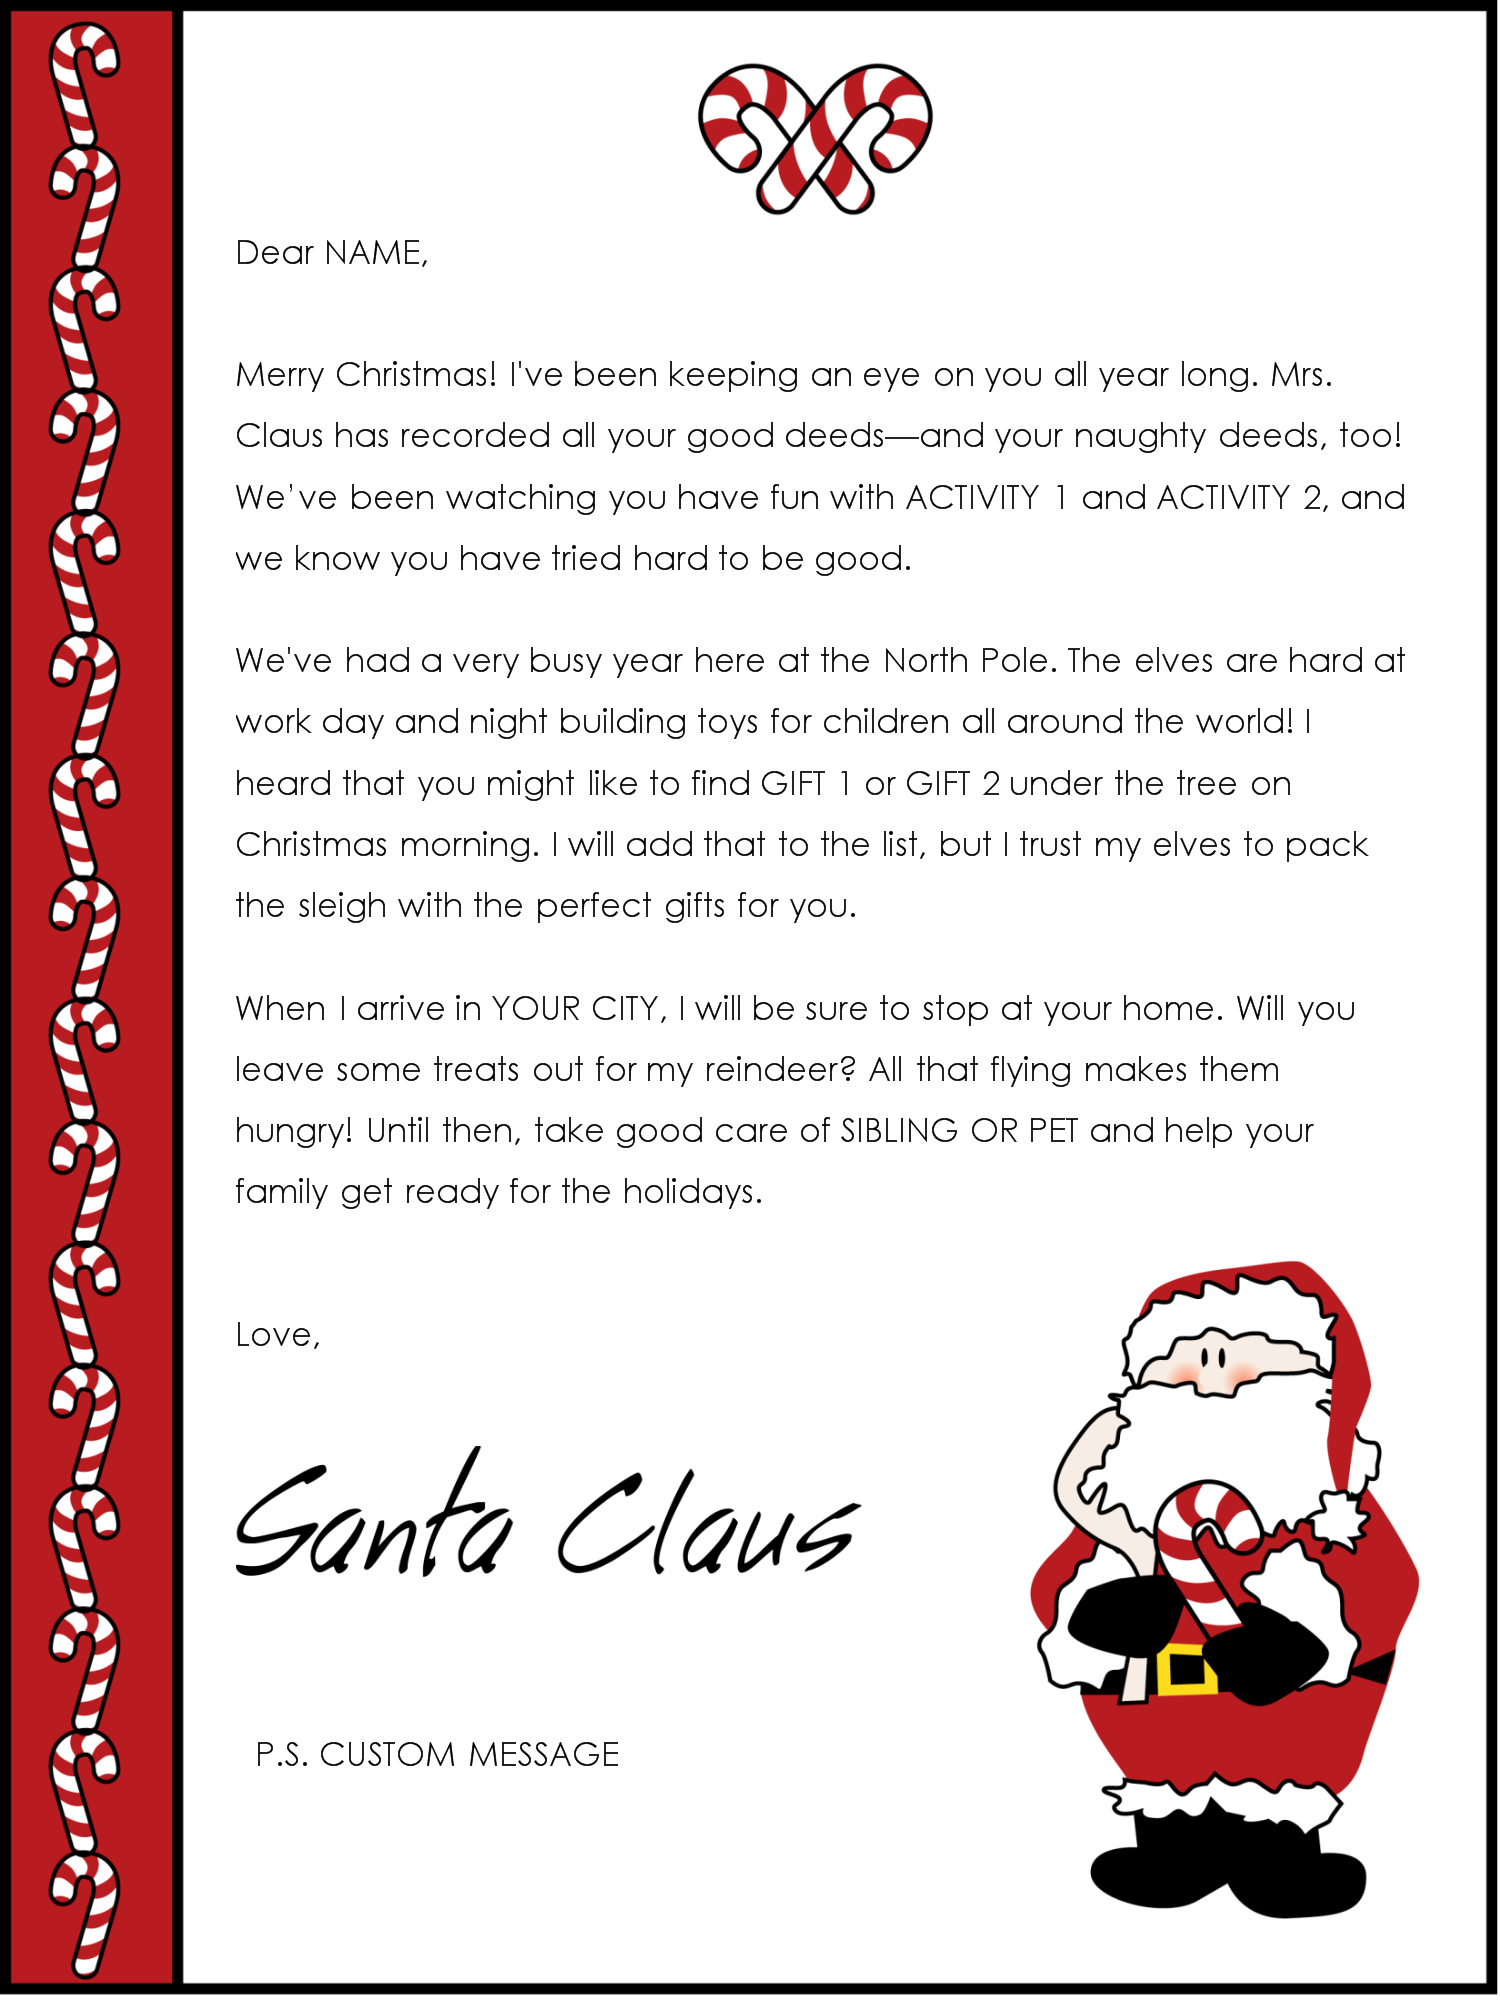 Free santa letter templates downloads christmas letter from santa free santa letter templates downloads christmas letter from santa spiritdancerdesigns Images